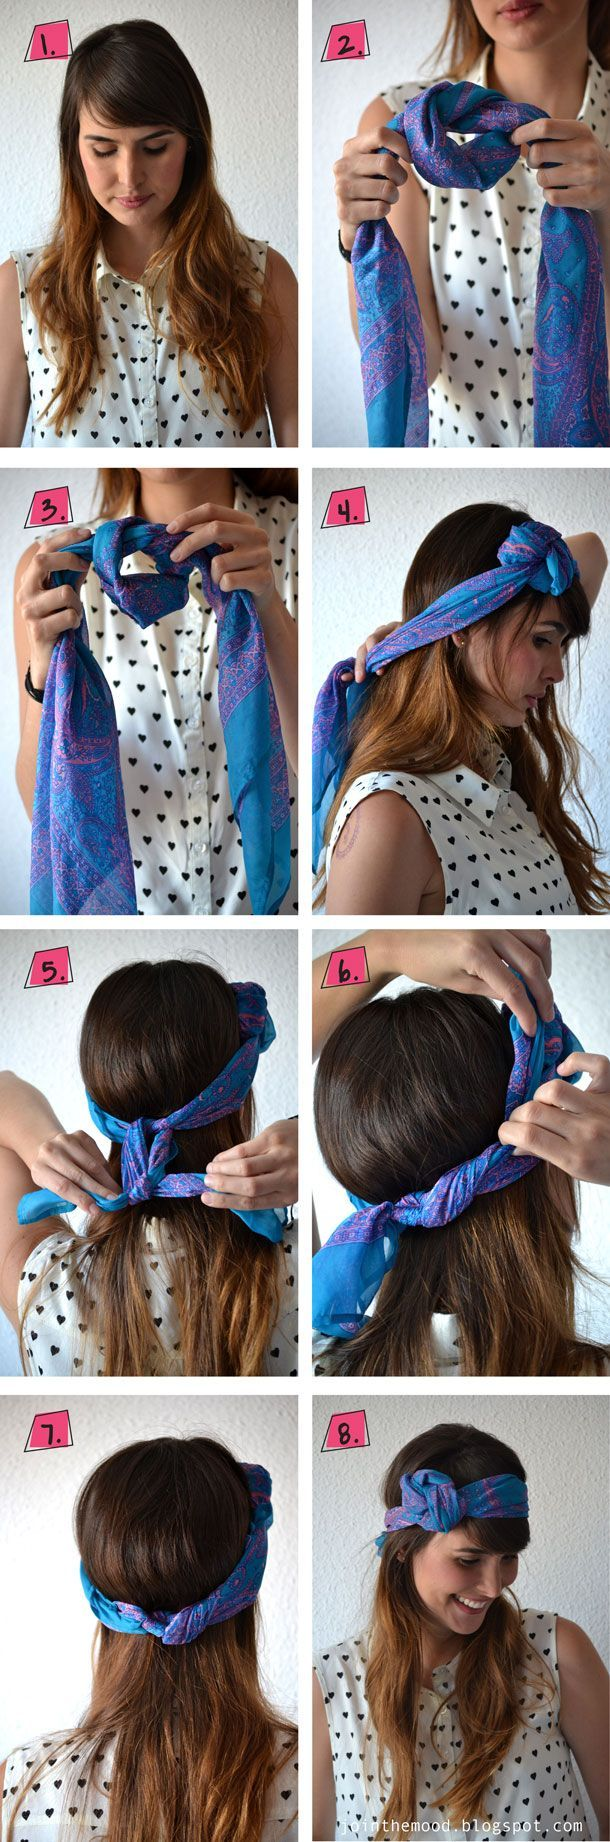 Knotted-Scarf-Hairband.jpg 610×1,842 pixeles